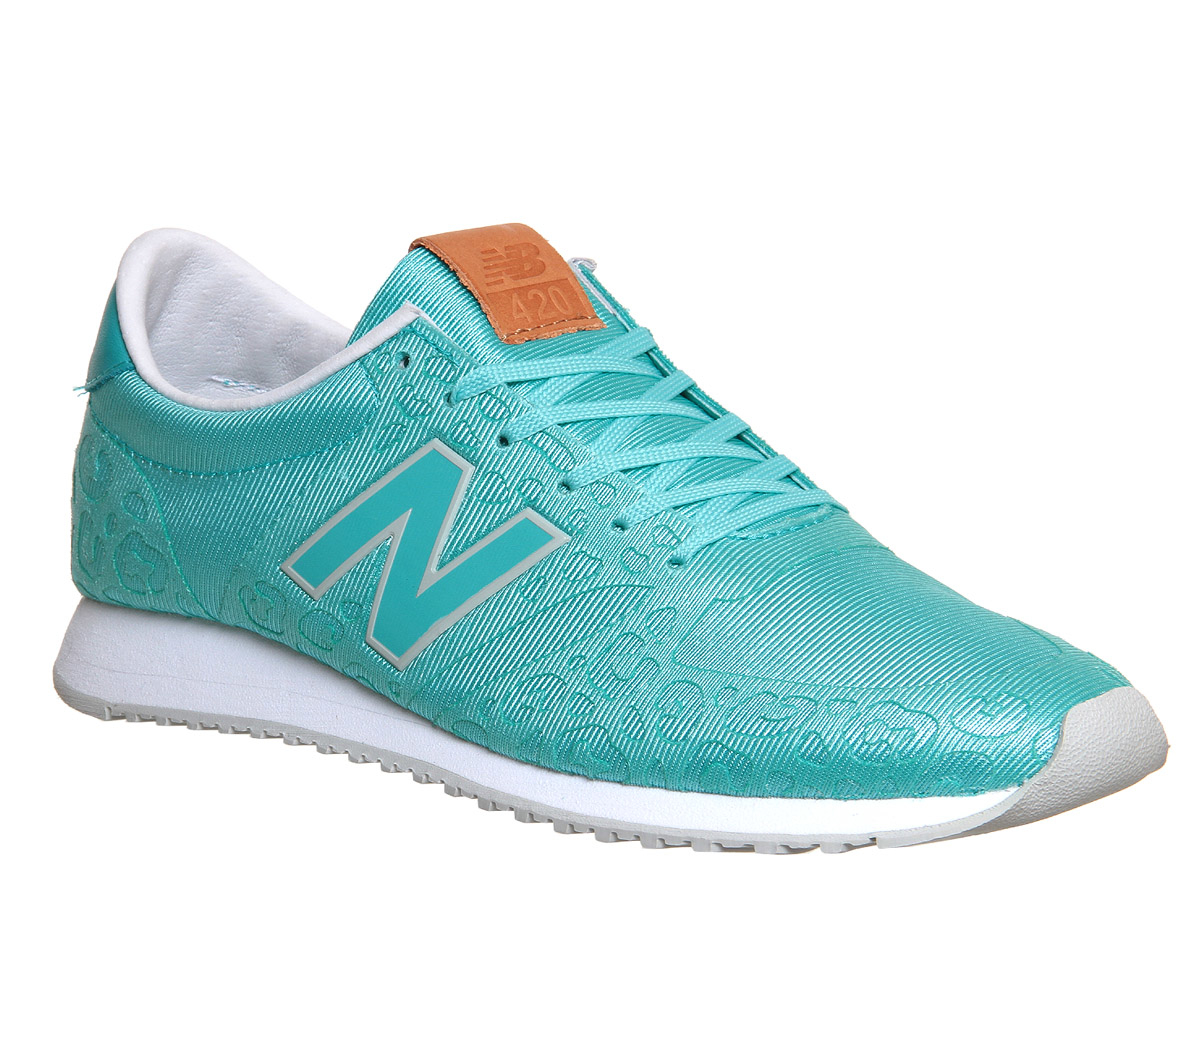 a2af0b197e02 ... where to buy lyst new balance 420 embossed mesh low top sneakers in blue  65056 7da77